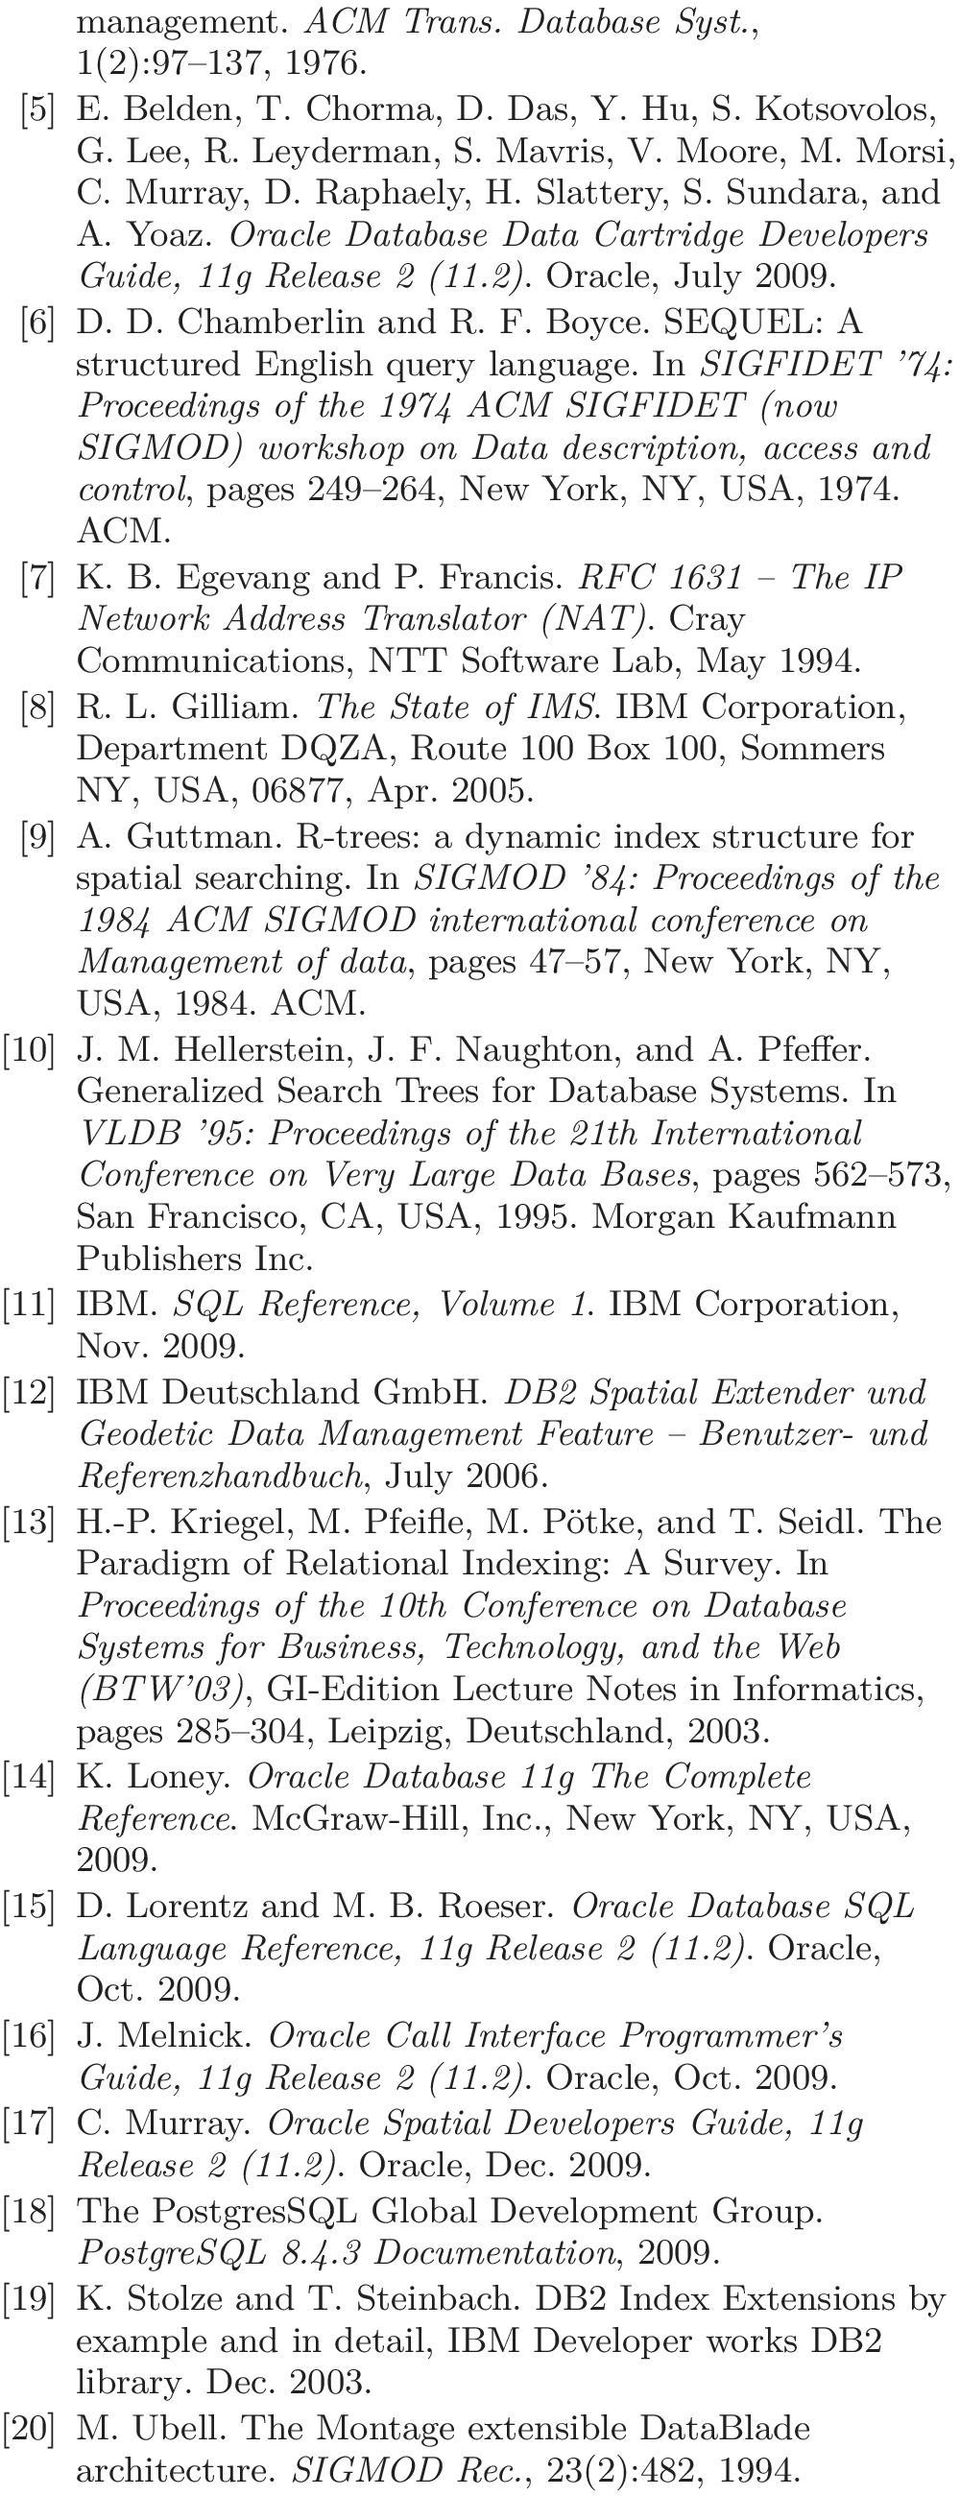 SEQUEL: A structured English query language. In SIGFIDET 74: Proceedings of the 1974 ACM SIGFIDET (now SIGMOD) workshop on Data description, access and control, pages 249 264, New York, NY, USA, 1974.